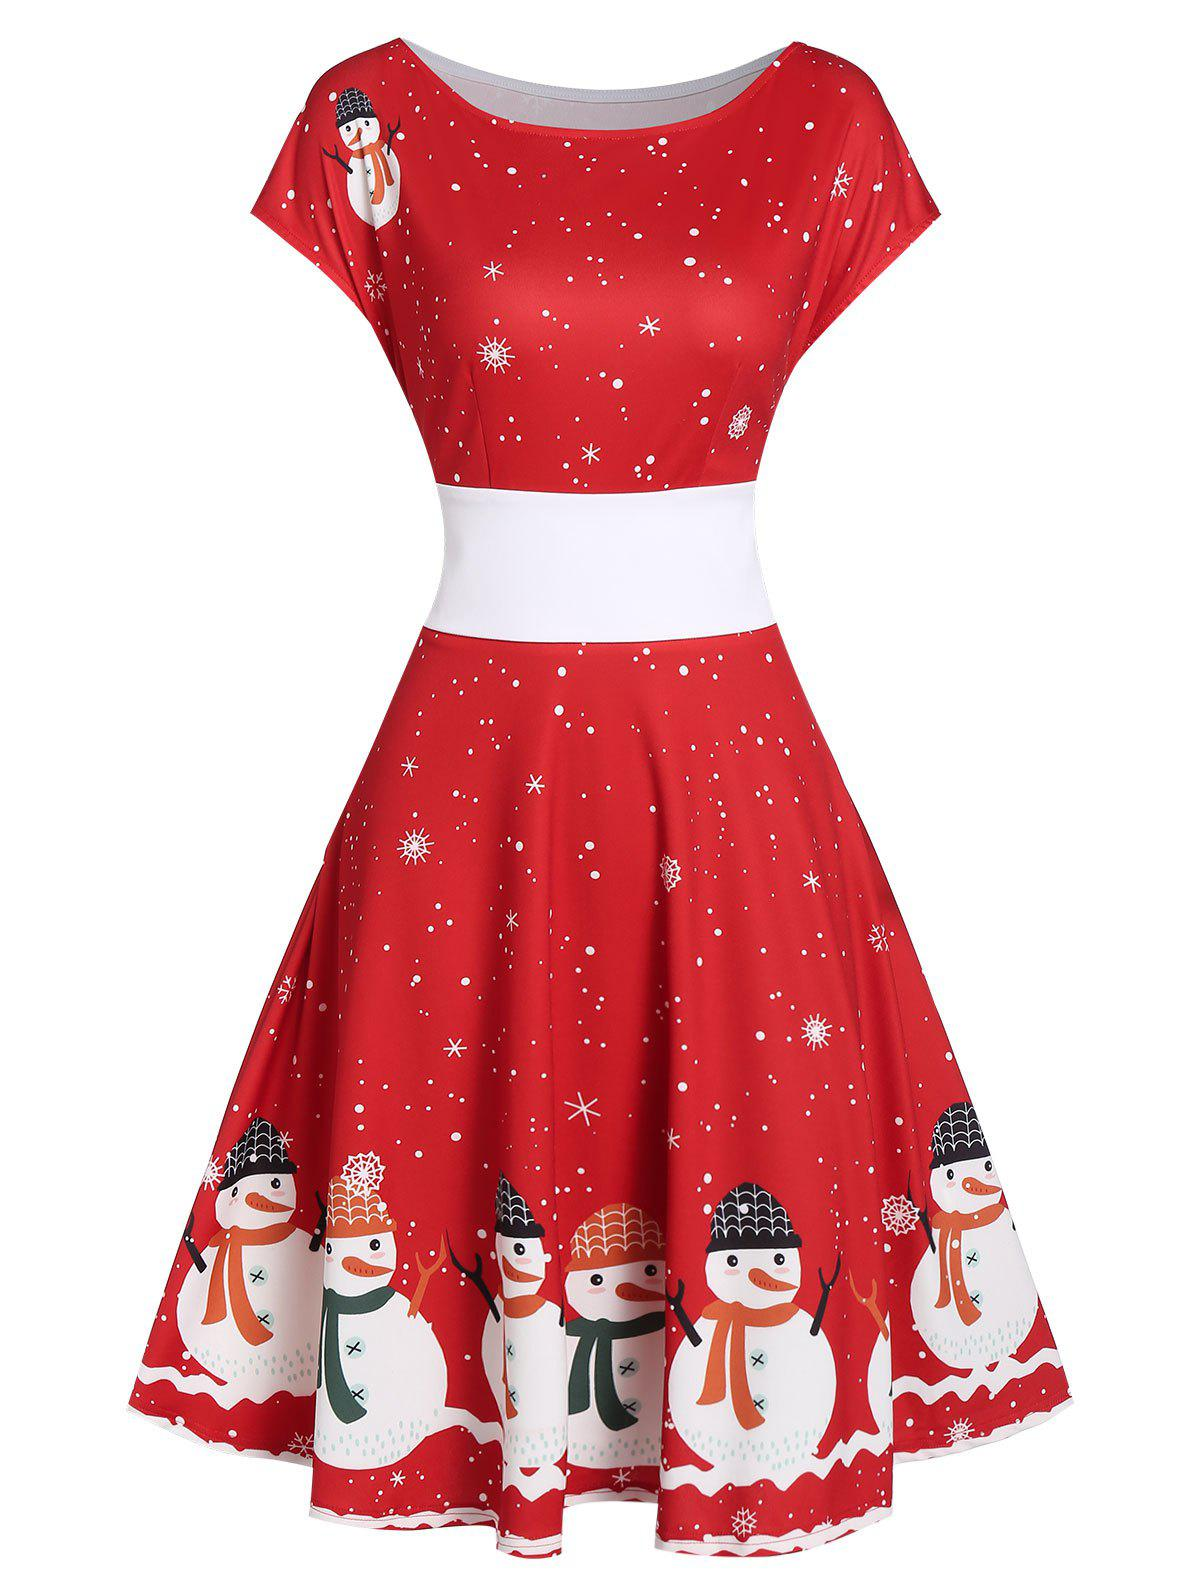 Fashion Vintage Snowman Snowflake Print Christmas Swing Dress